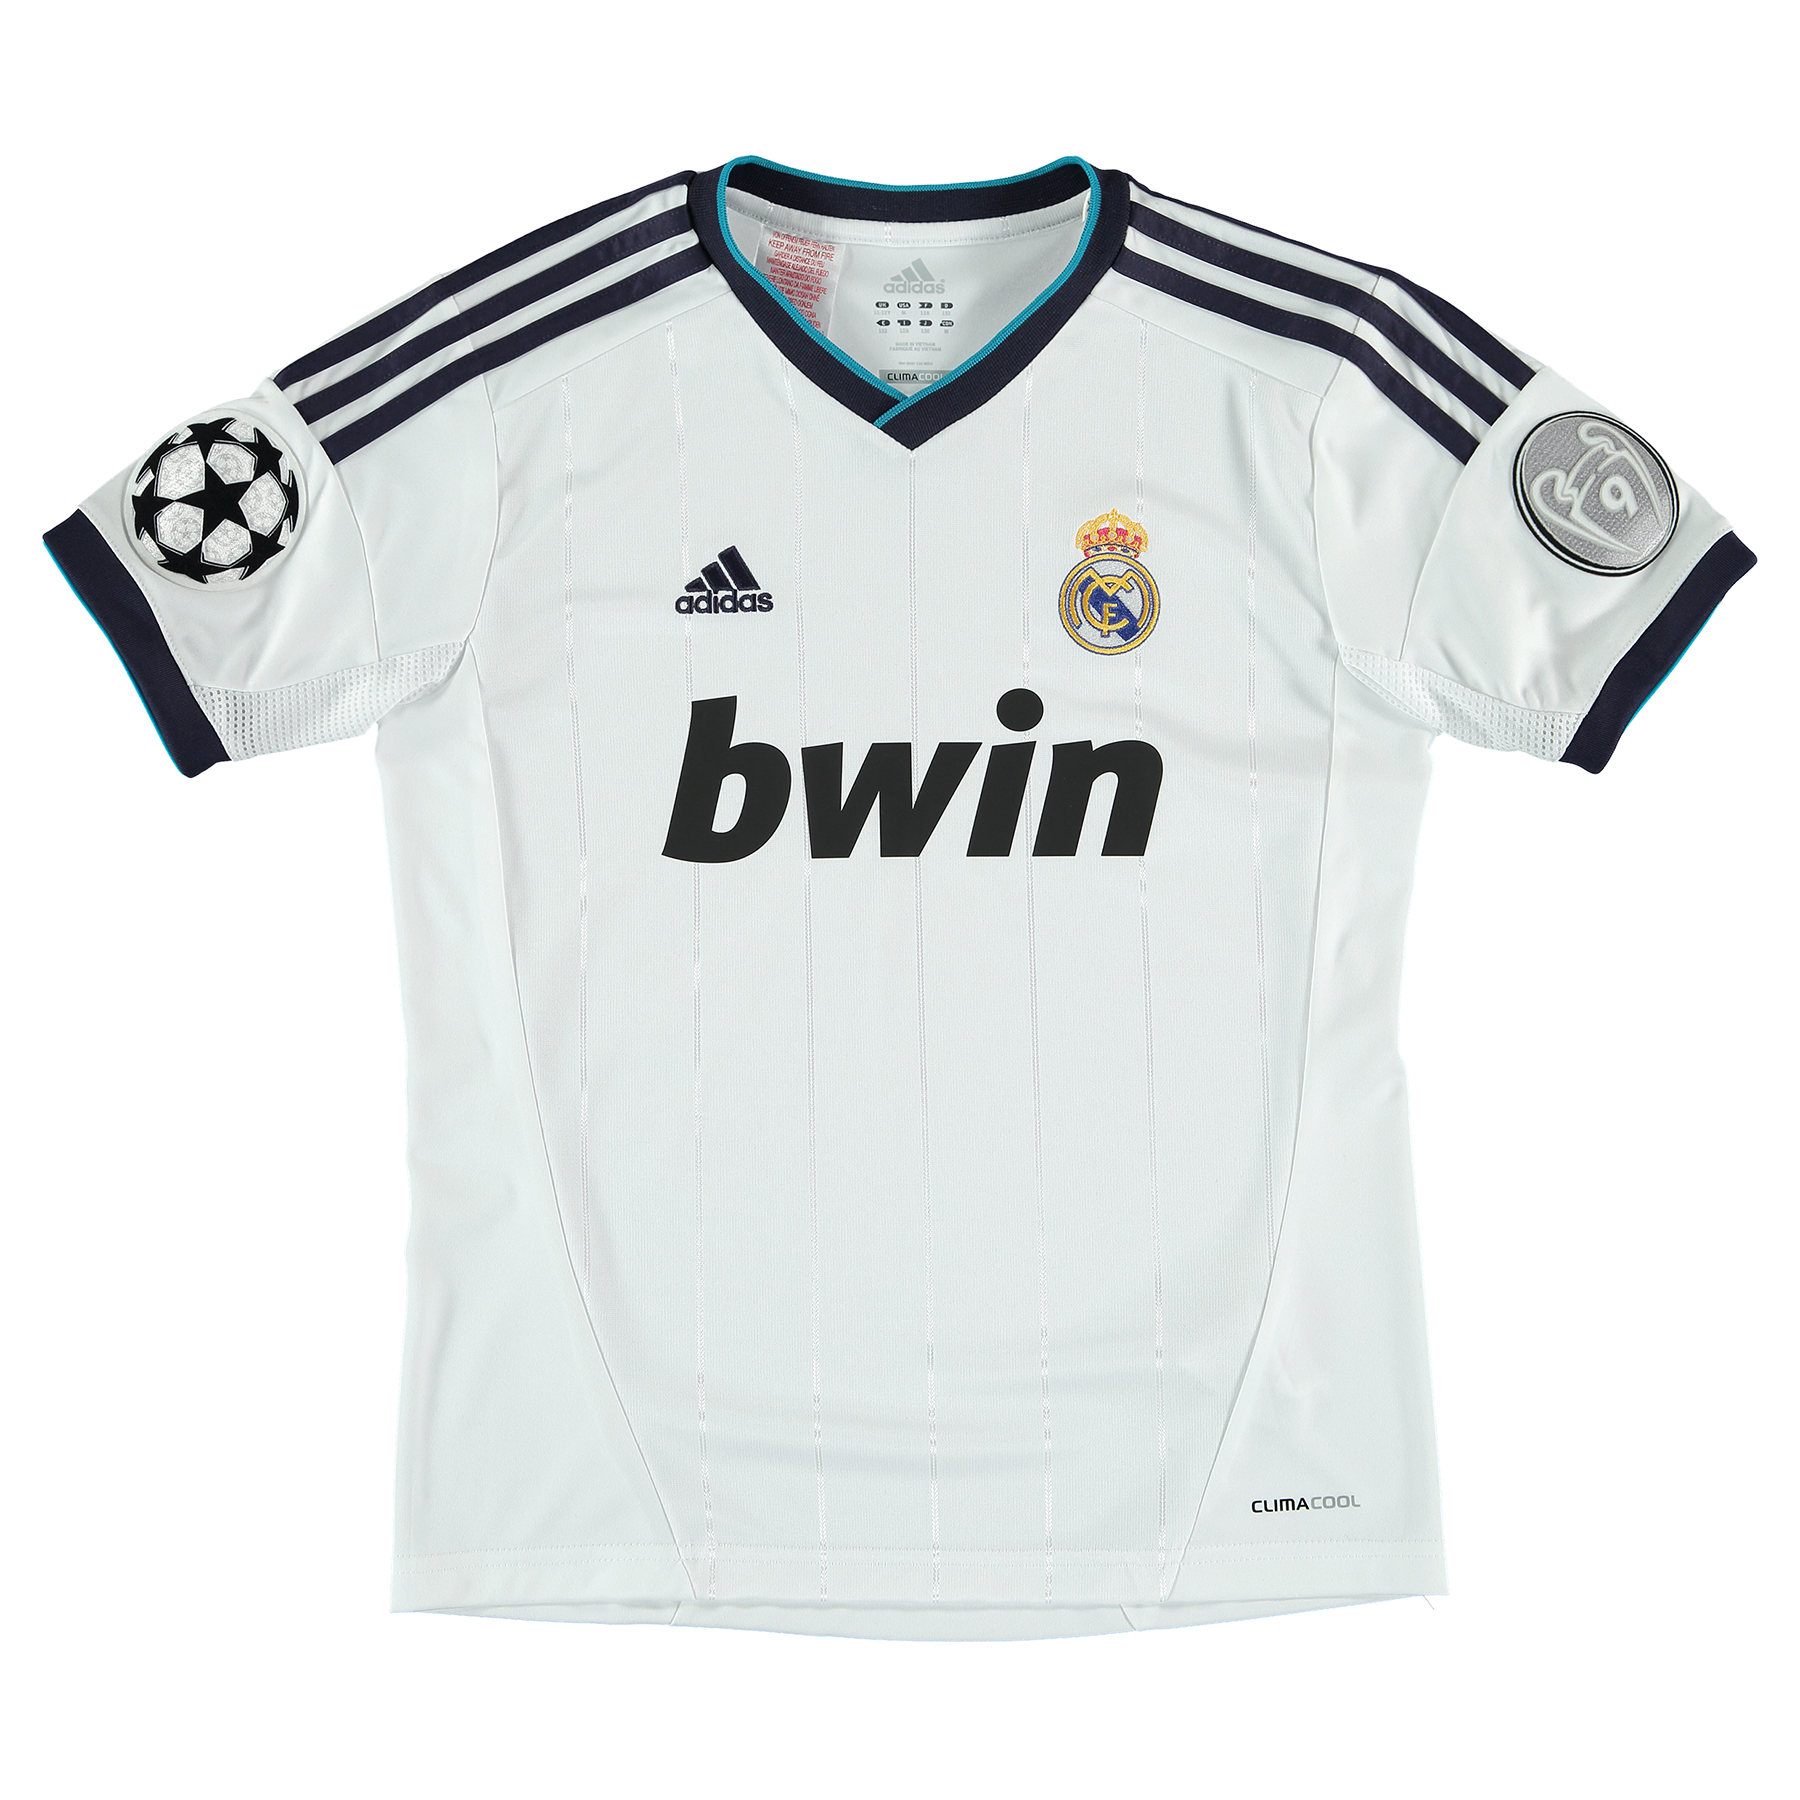 Real Madrid UEFA Champions League Home Shirt 2012/13 Kids